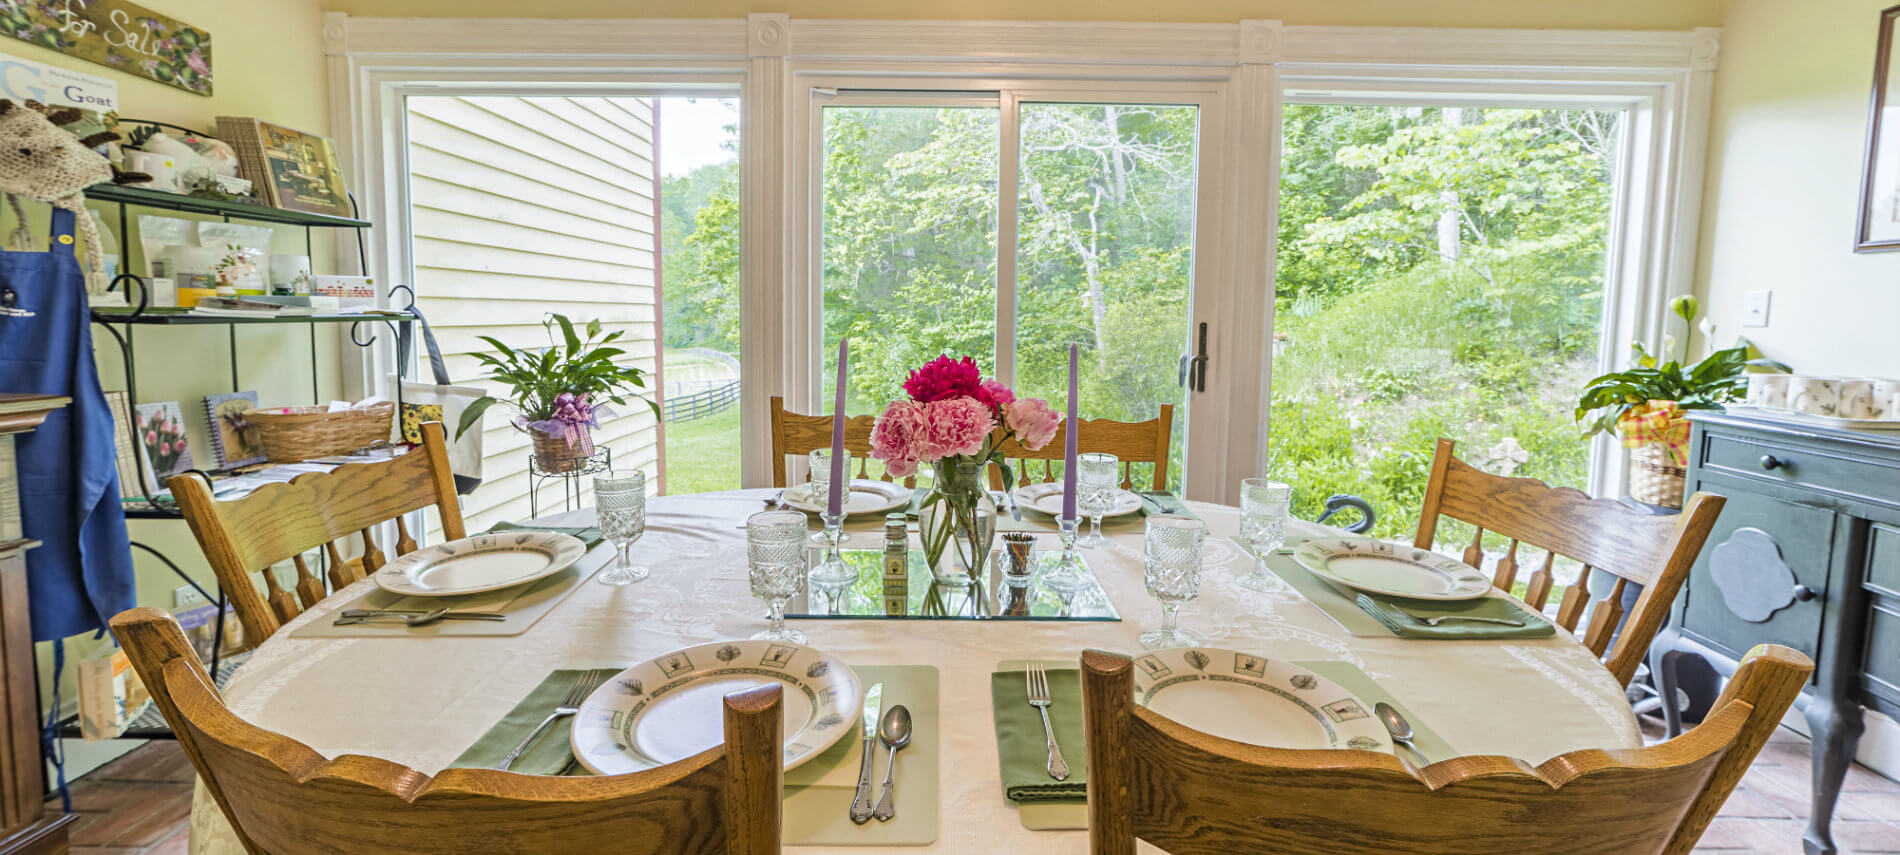 The Sunroom has a complete wall of white-framed windows so you can experience the outdoor seasons as you dine.